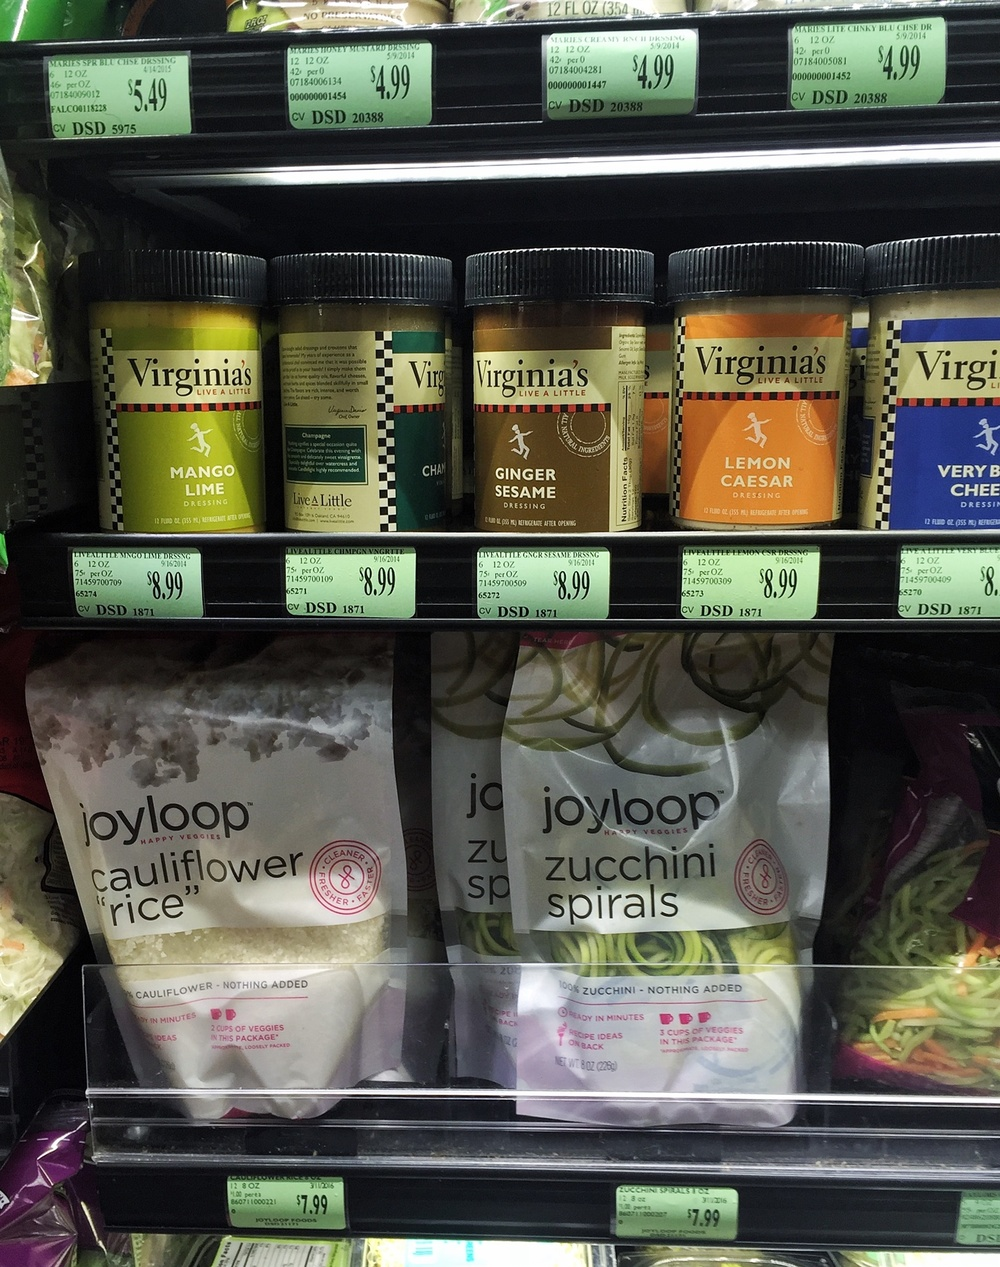 Find joyloop below Virginia's dressing at the Shattuck Andronico's.